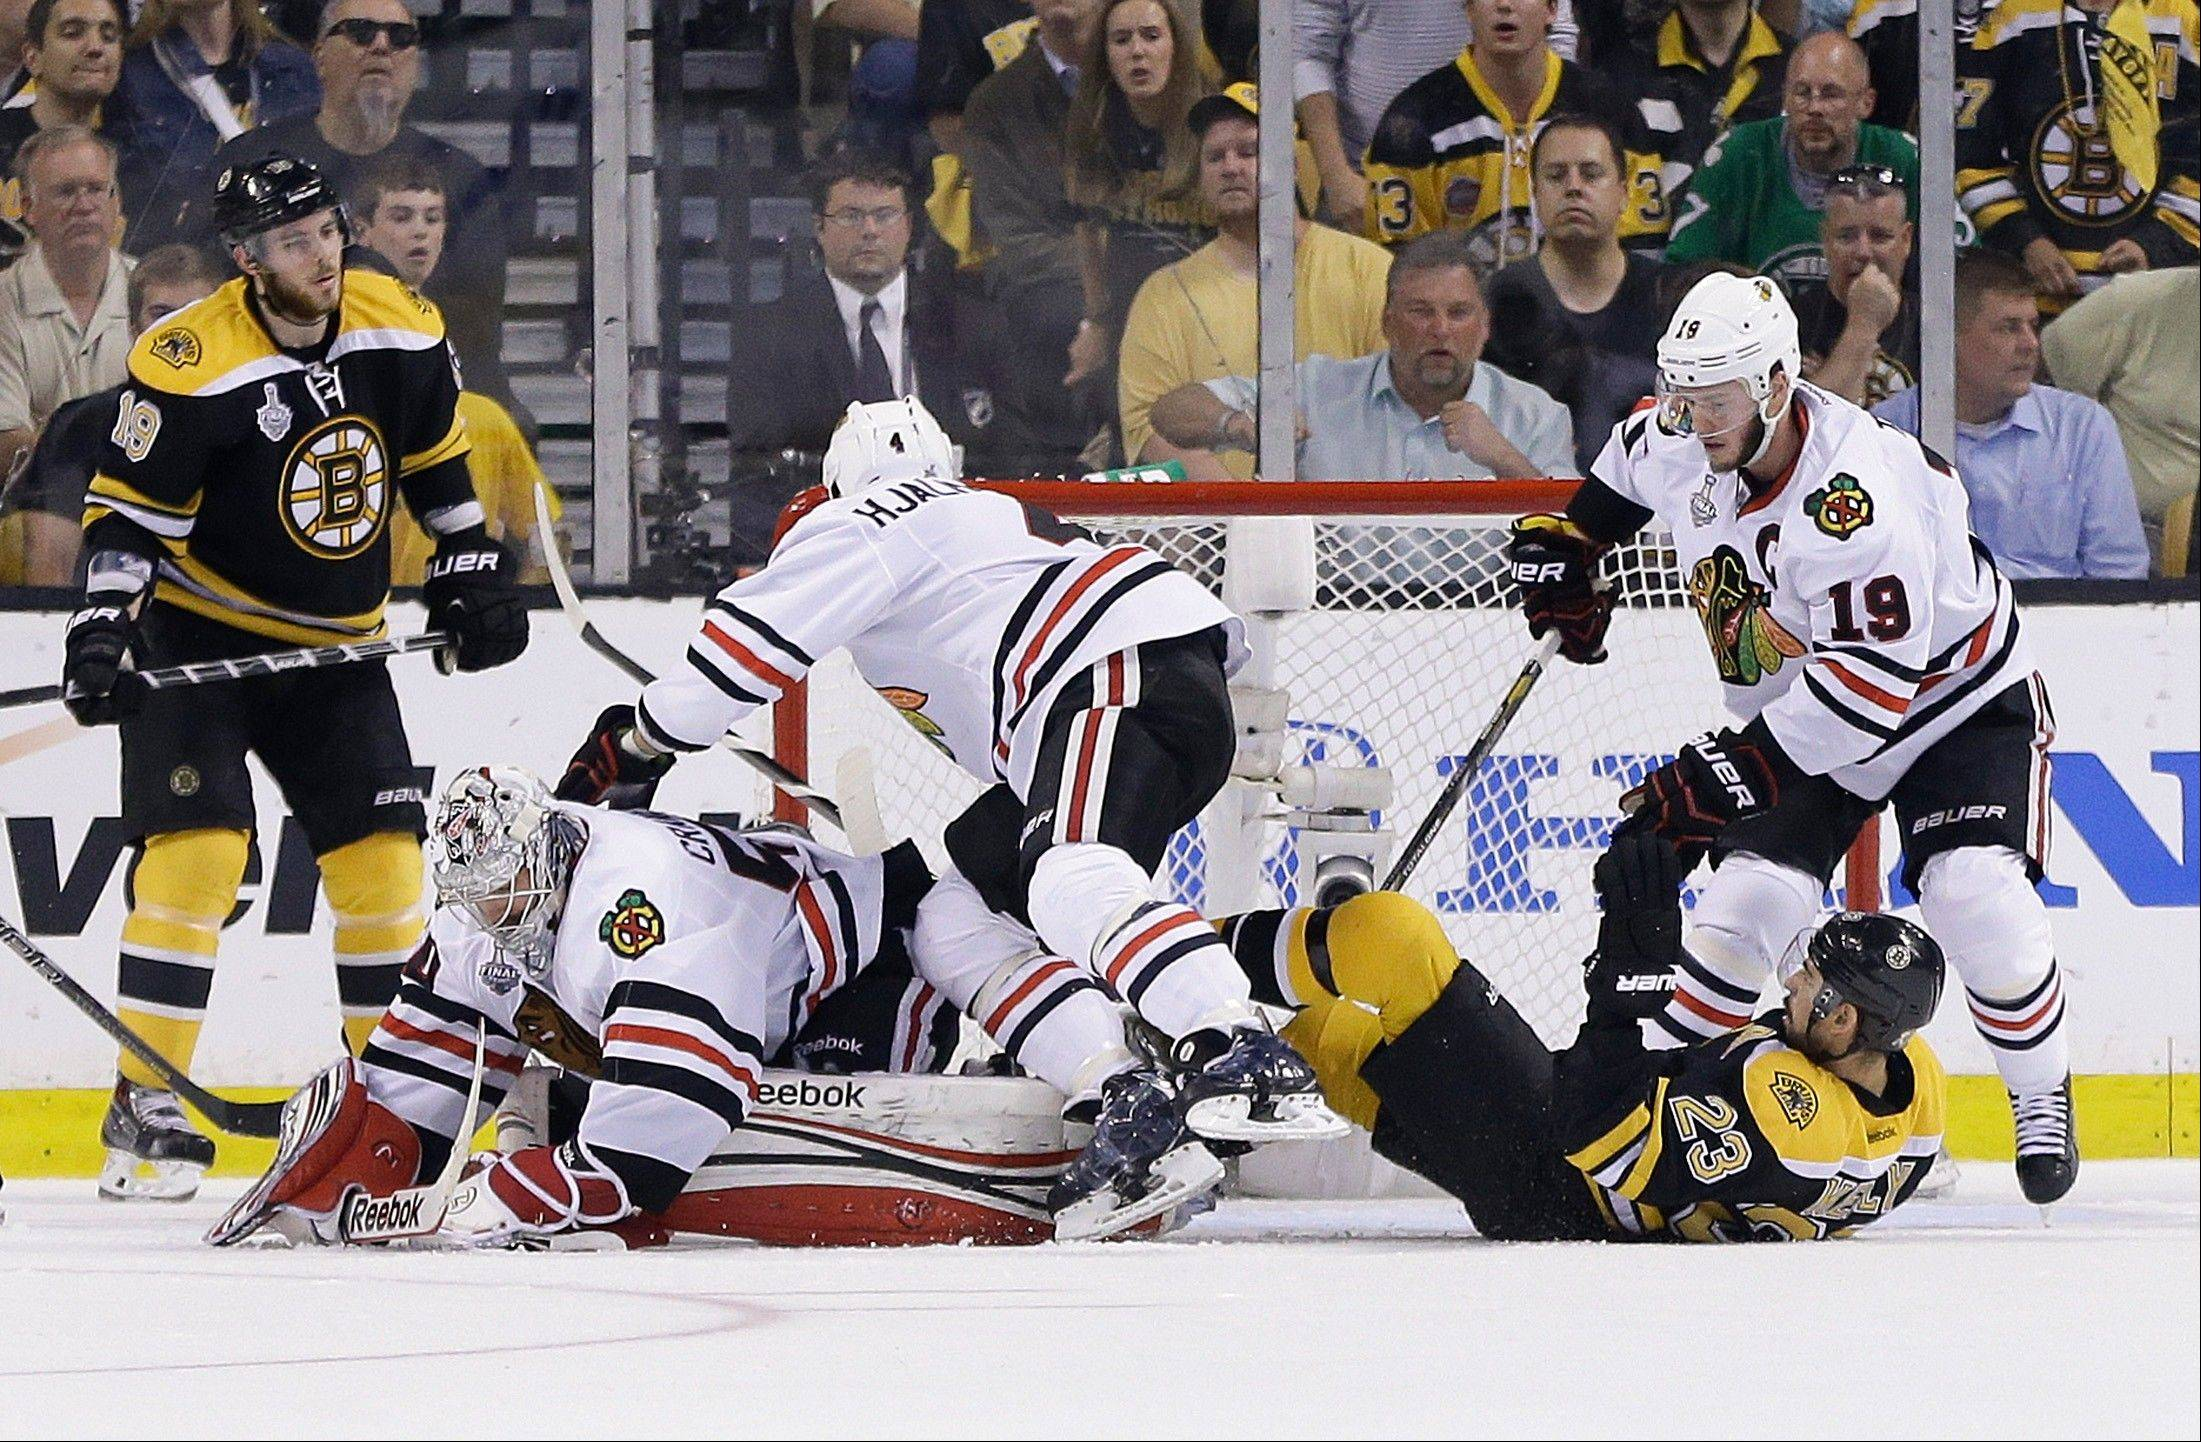 Blackhawks defenseman Niklas Hjalmarsson Boston Bruins center Chris Kelly (23) go down between Blackhawks goalie Corey Crawford, left, and Blackhawks center Jonathan Toews, right, during the first period Monday in Game 6 in Boston. \